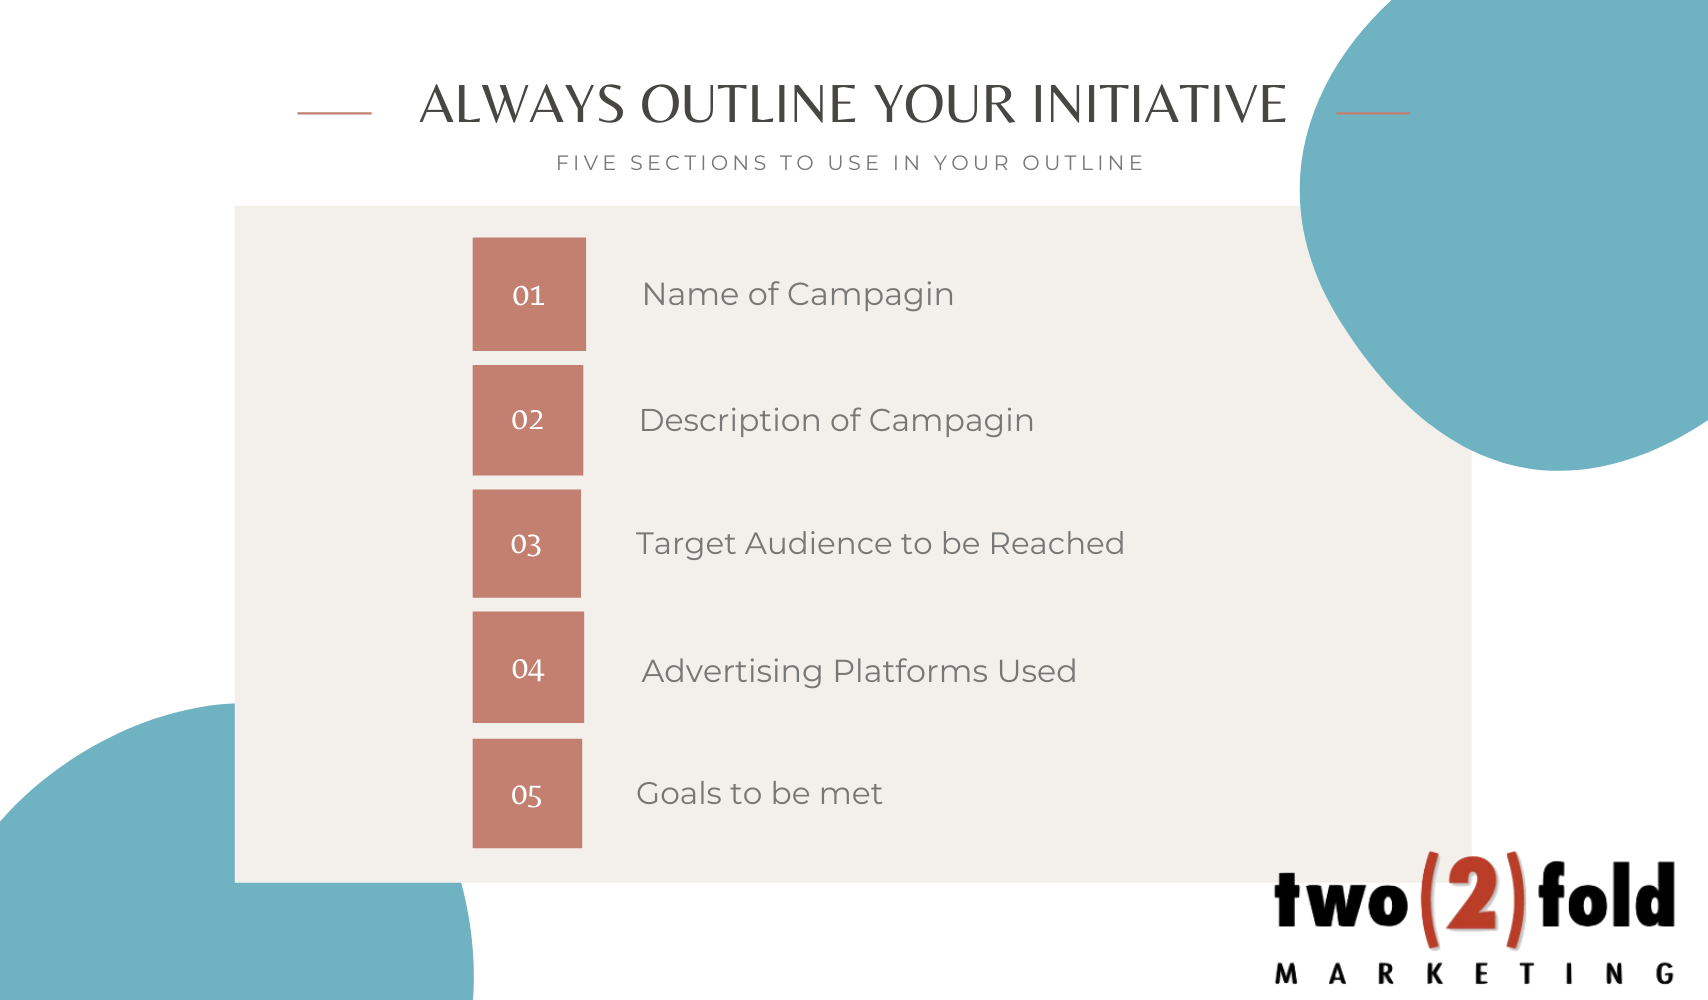 Always Outline Your Initiative